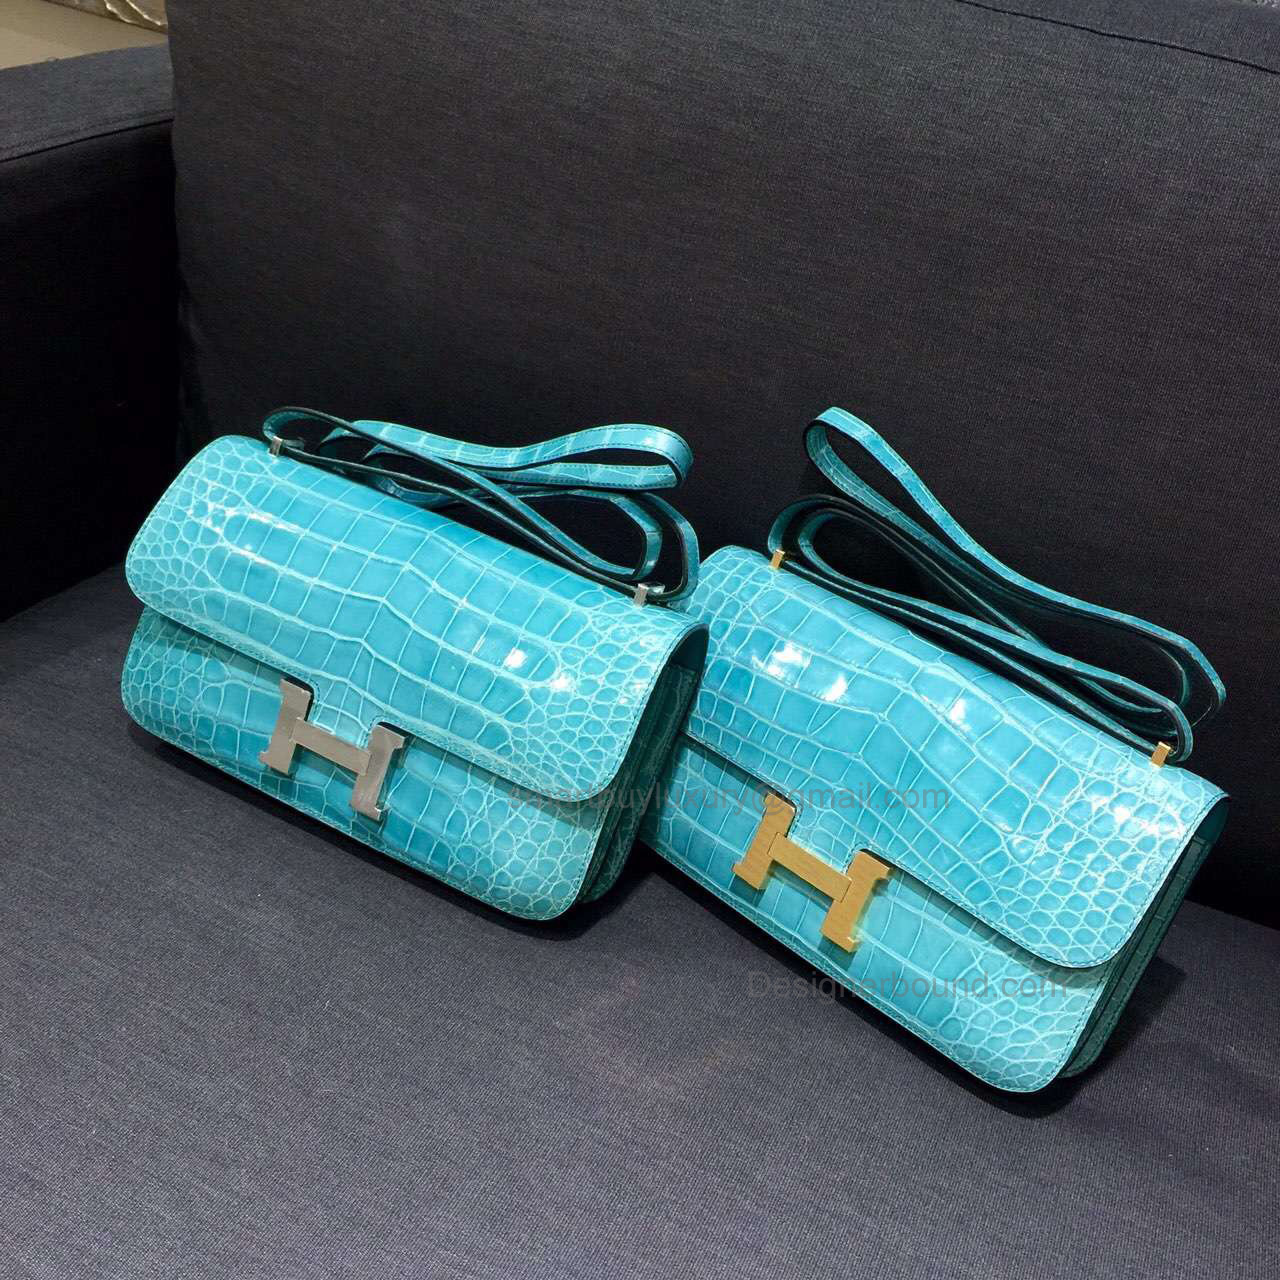 Copy Hermes Constance Elan 25 Bag in 7b Turquoise Blue Shining Nile Crocodile